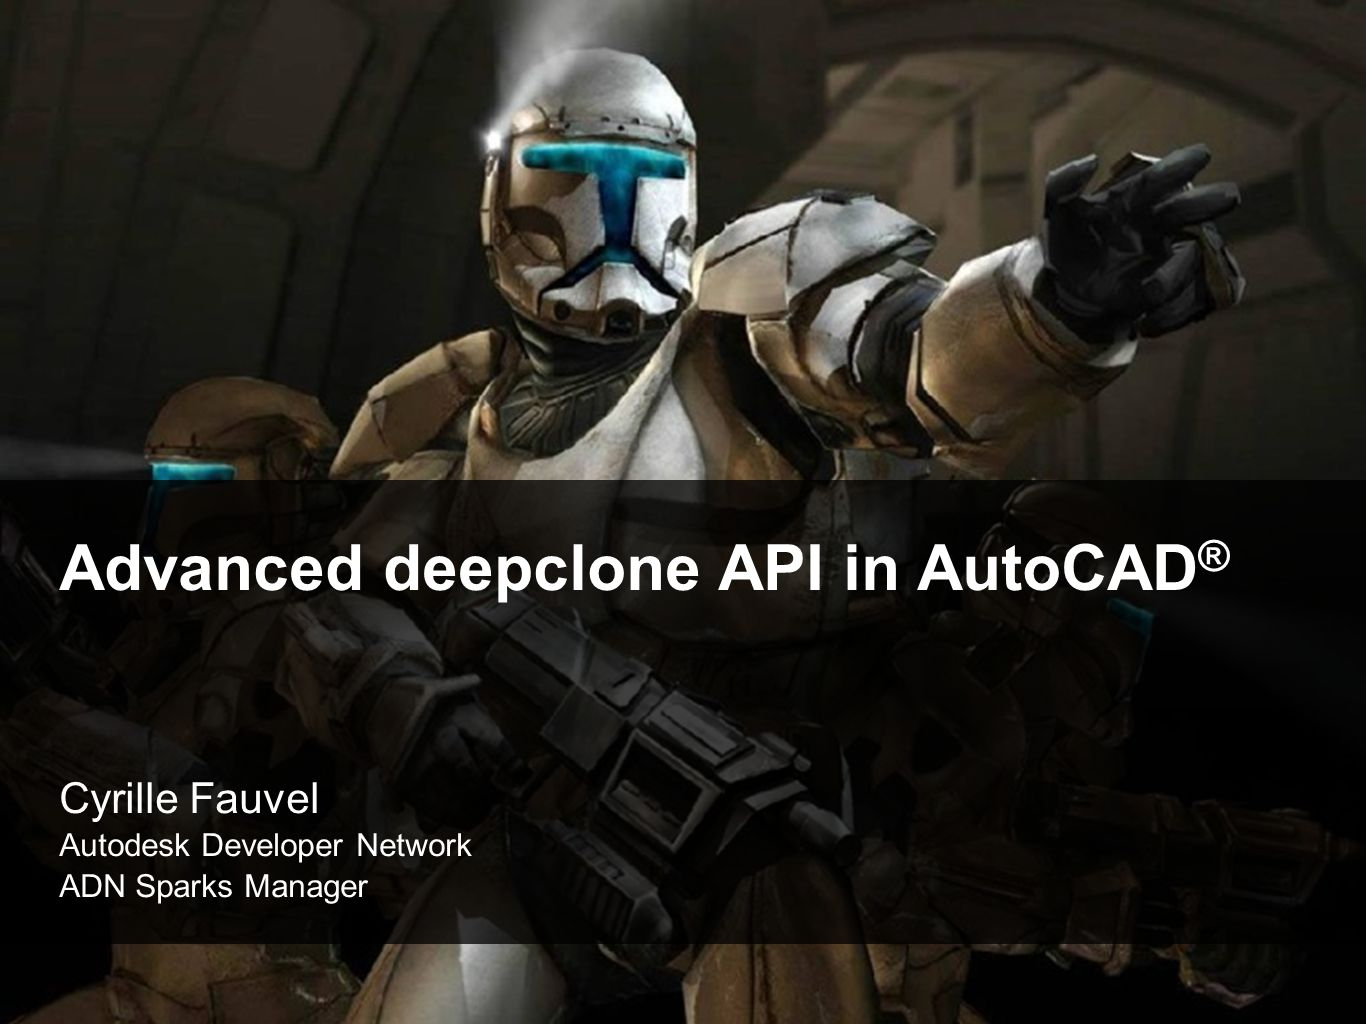 Advanced deepclone API in AutoCAD®